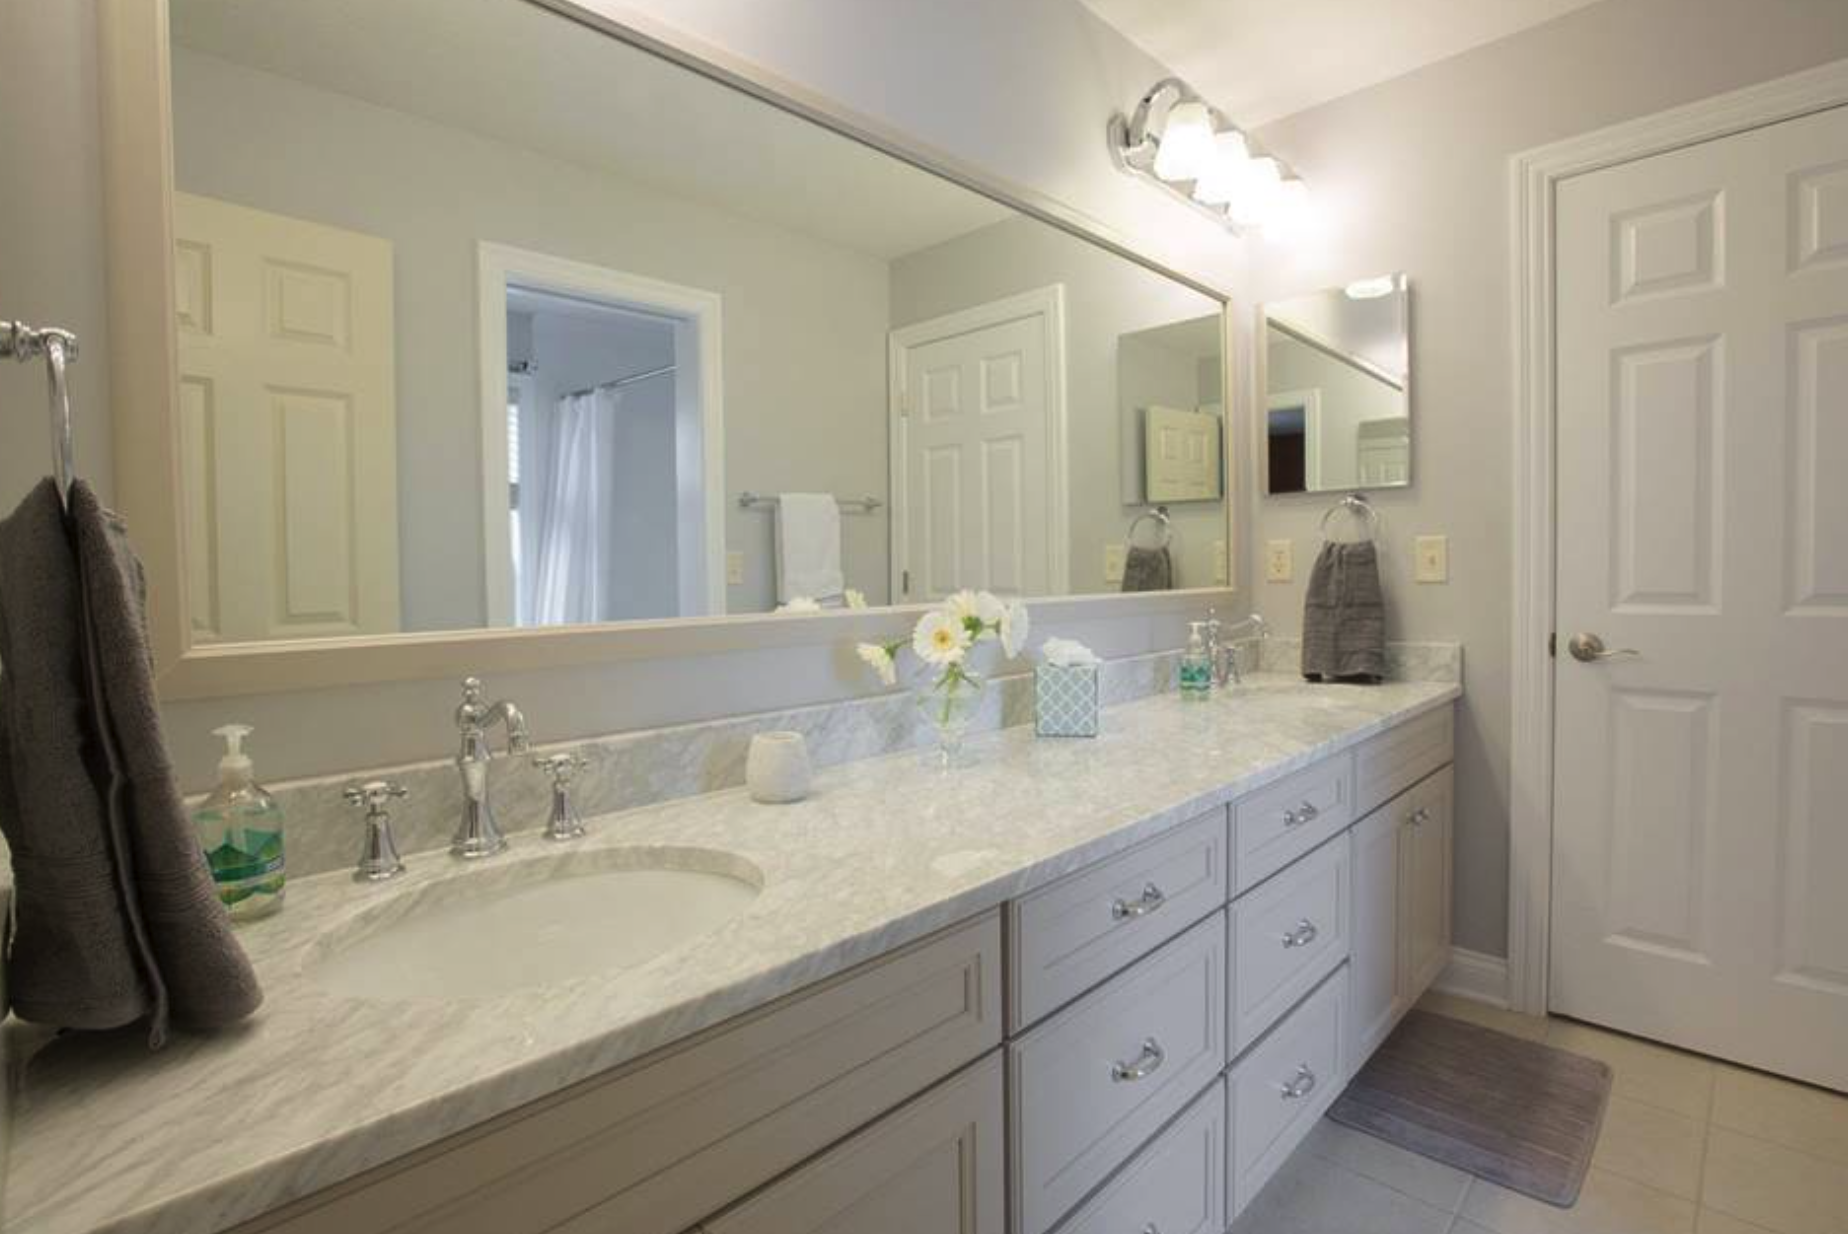 Bathroom remodeling tips luxury bathroom remodeling for Bath remodel in one day